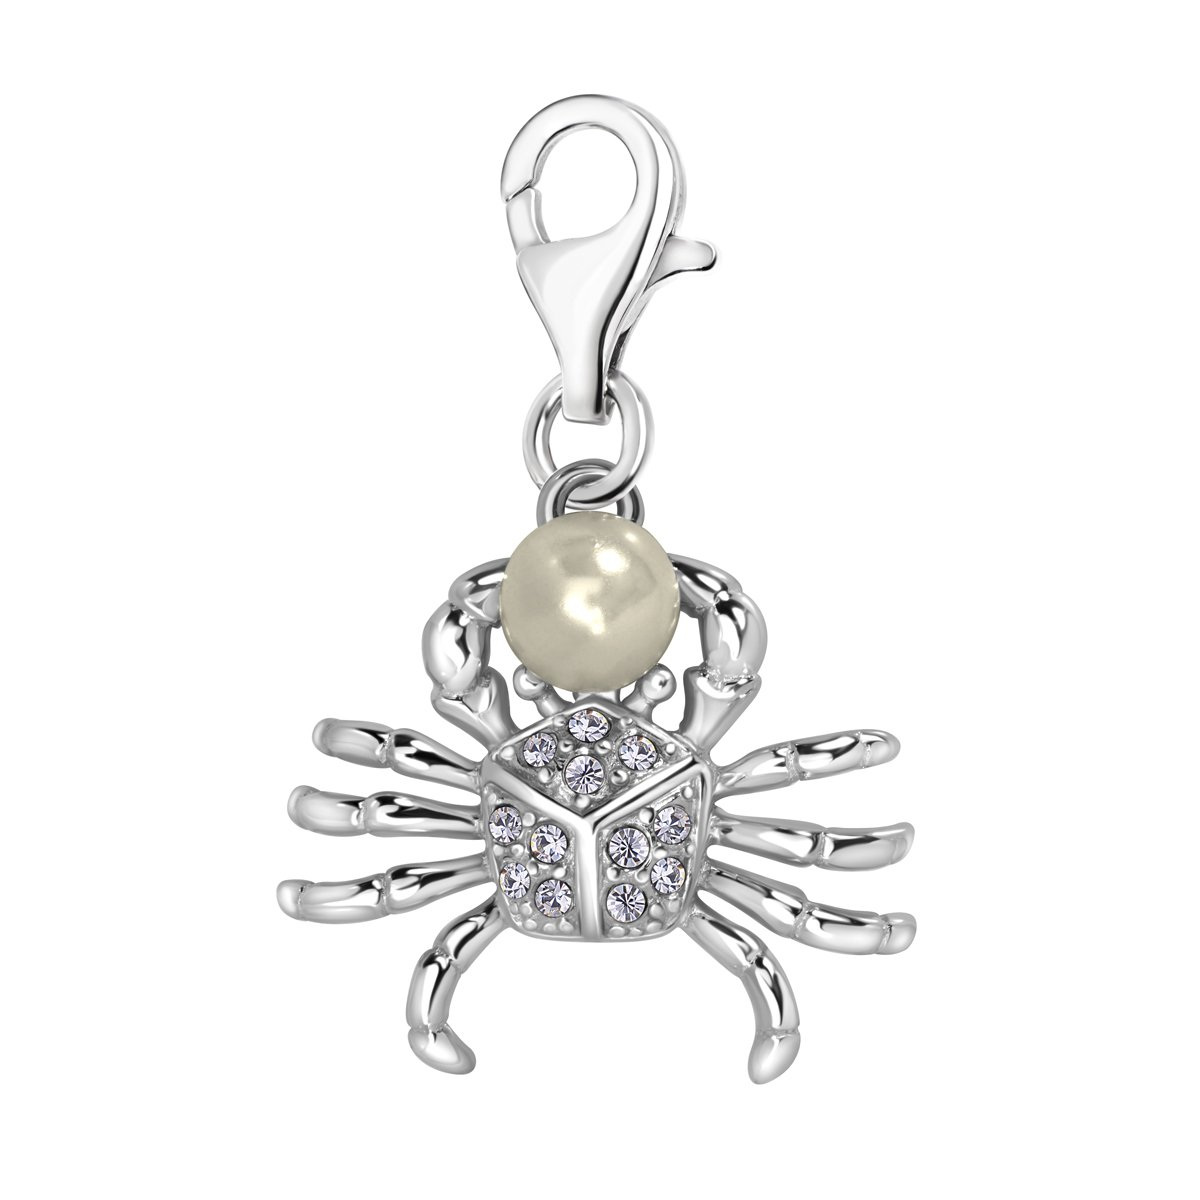 Quiges 925 Sterling Silver White Cubic Zirconia and Imitation Pearl 3D Crab Lobster Clasp Charm Clip on Pendant